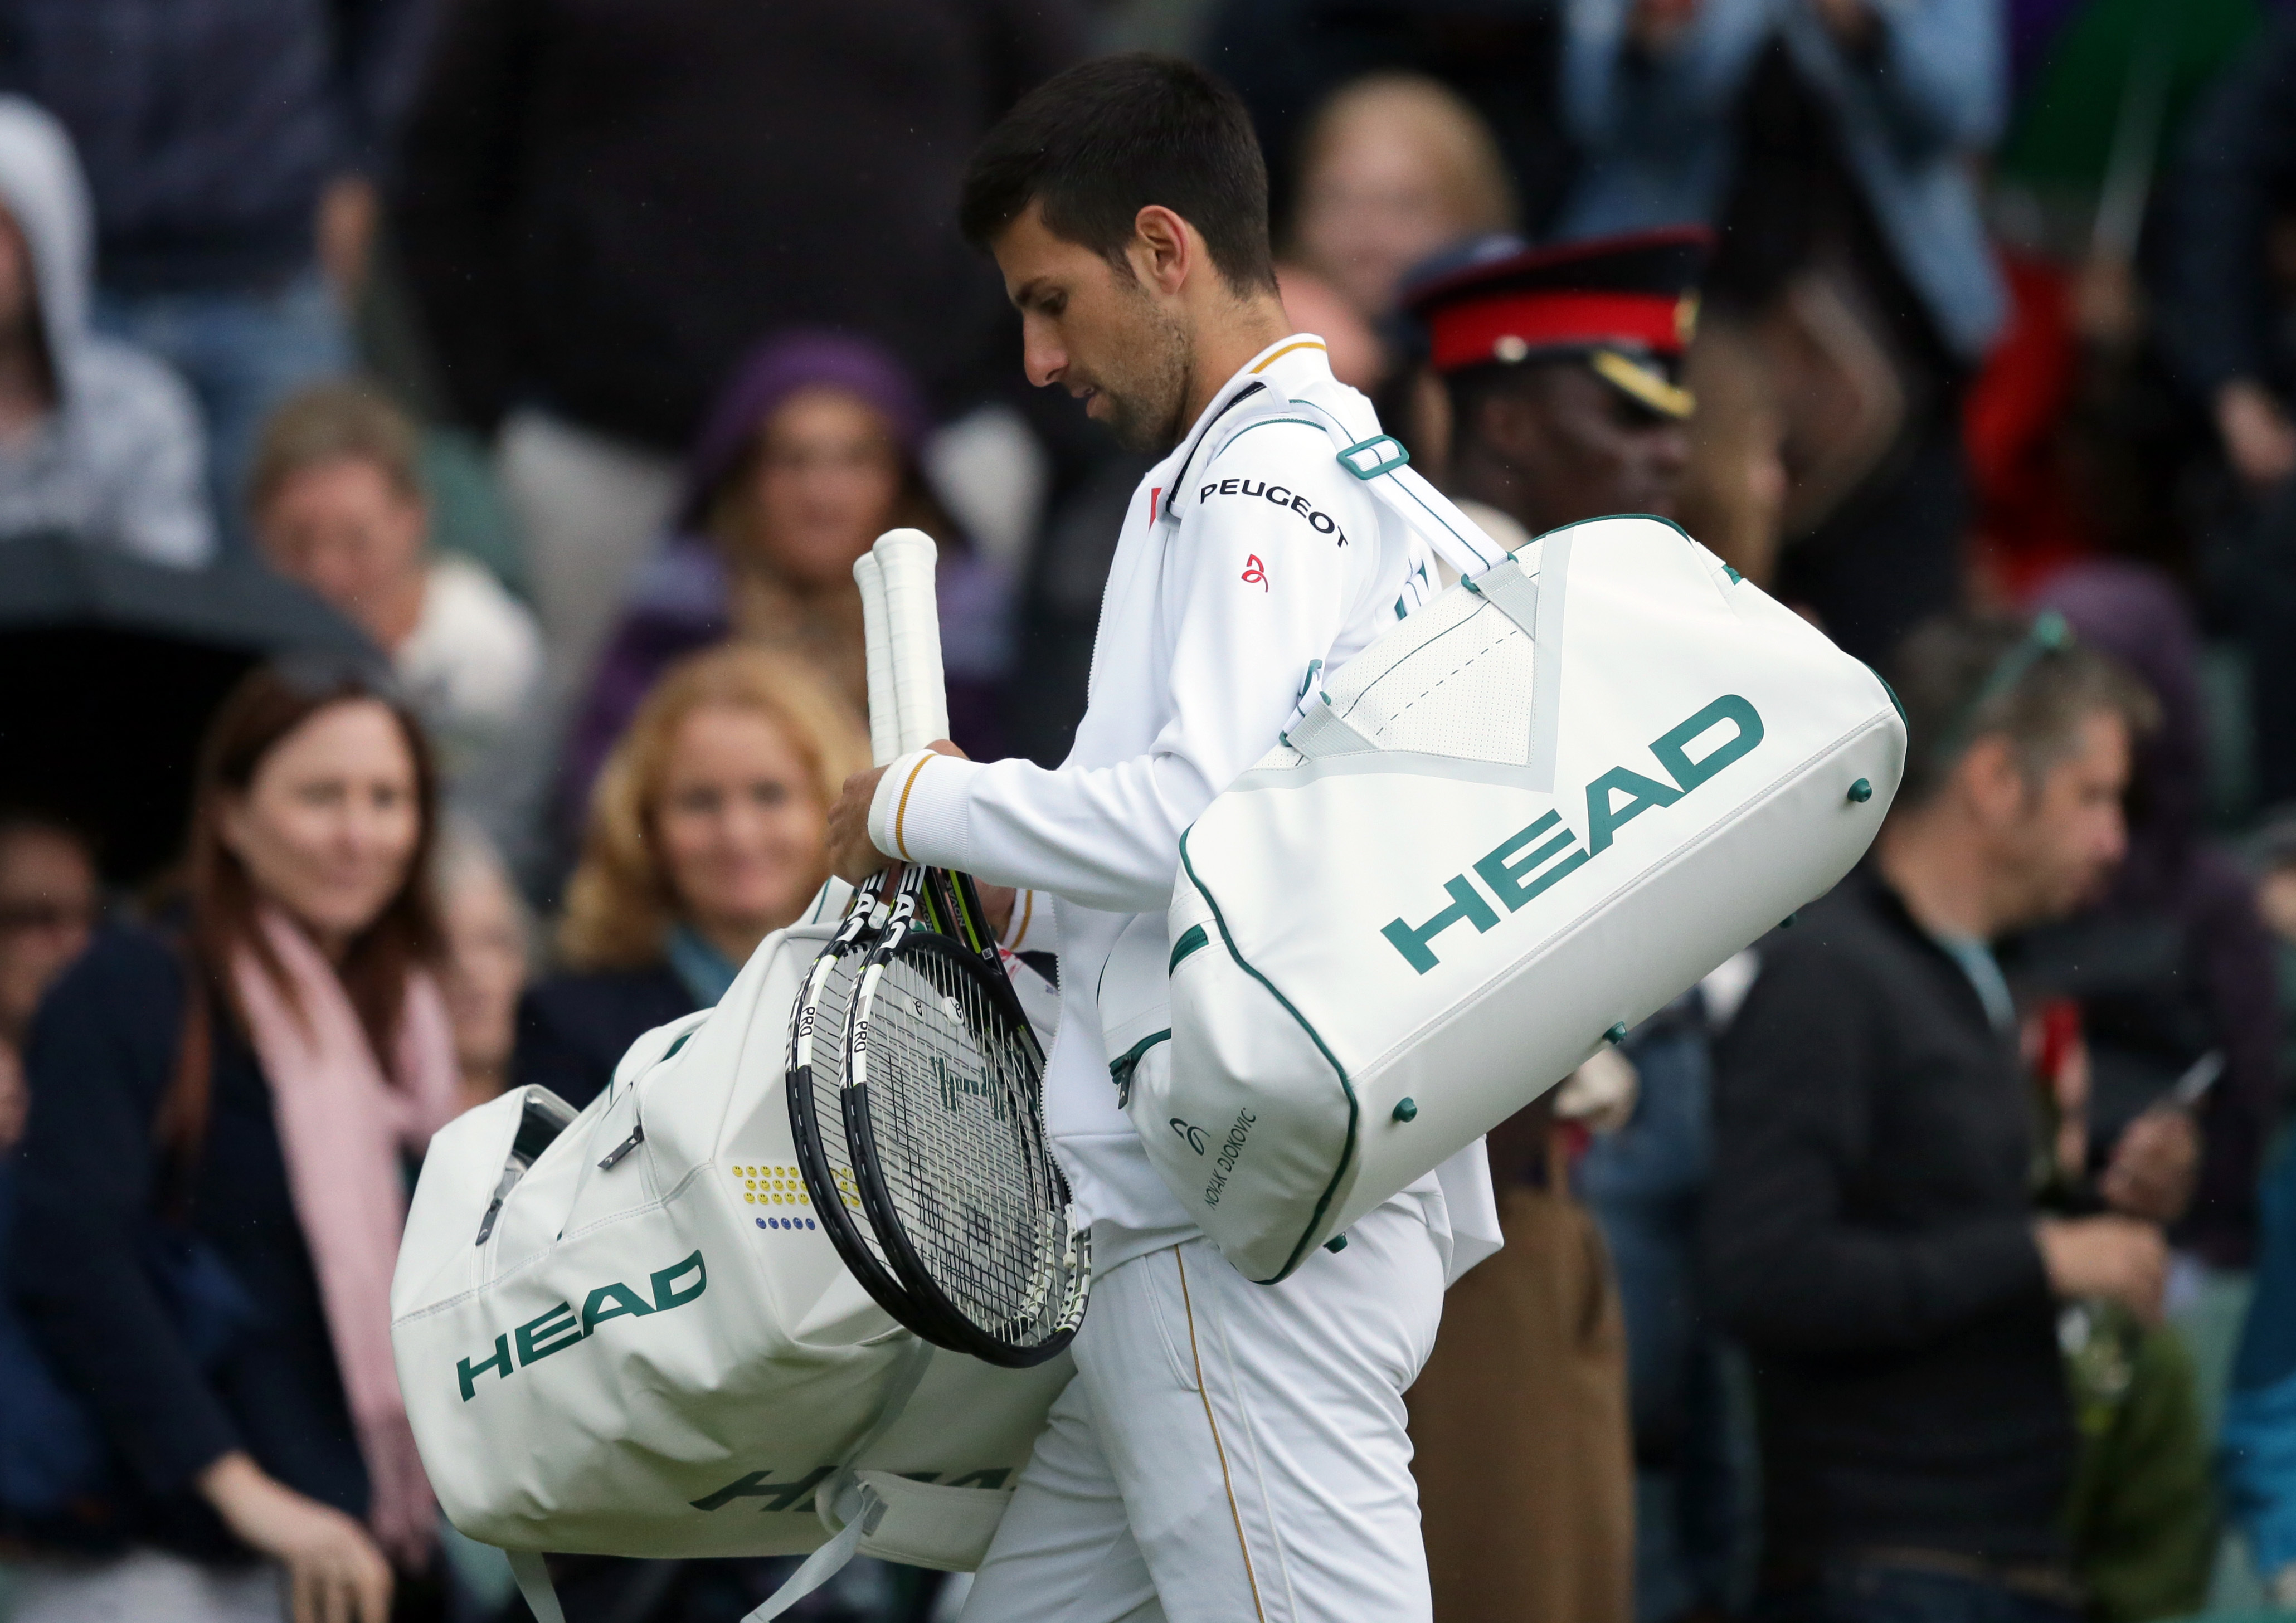 Novak Djokovic of Serbia leaves the court as rain stops his men's singles match against Sam Querrey of the U.S on day five of the Wimbledon Tennis Championships in London, Friday, July 1, 2016. (AP Photo/Tim Ireland)